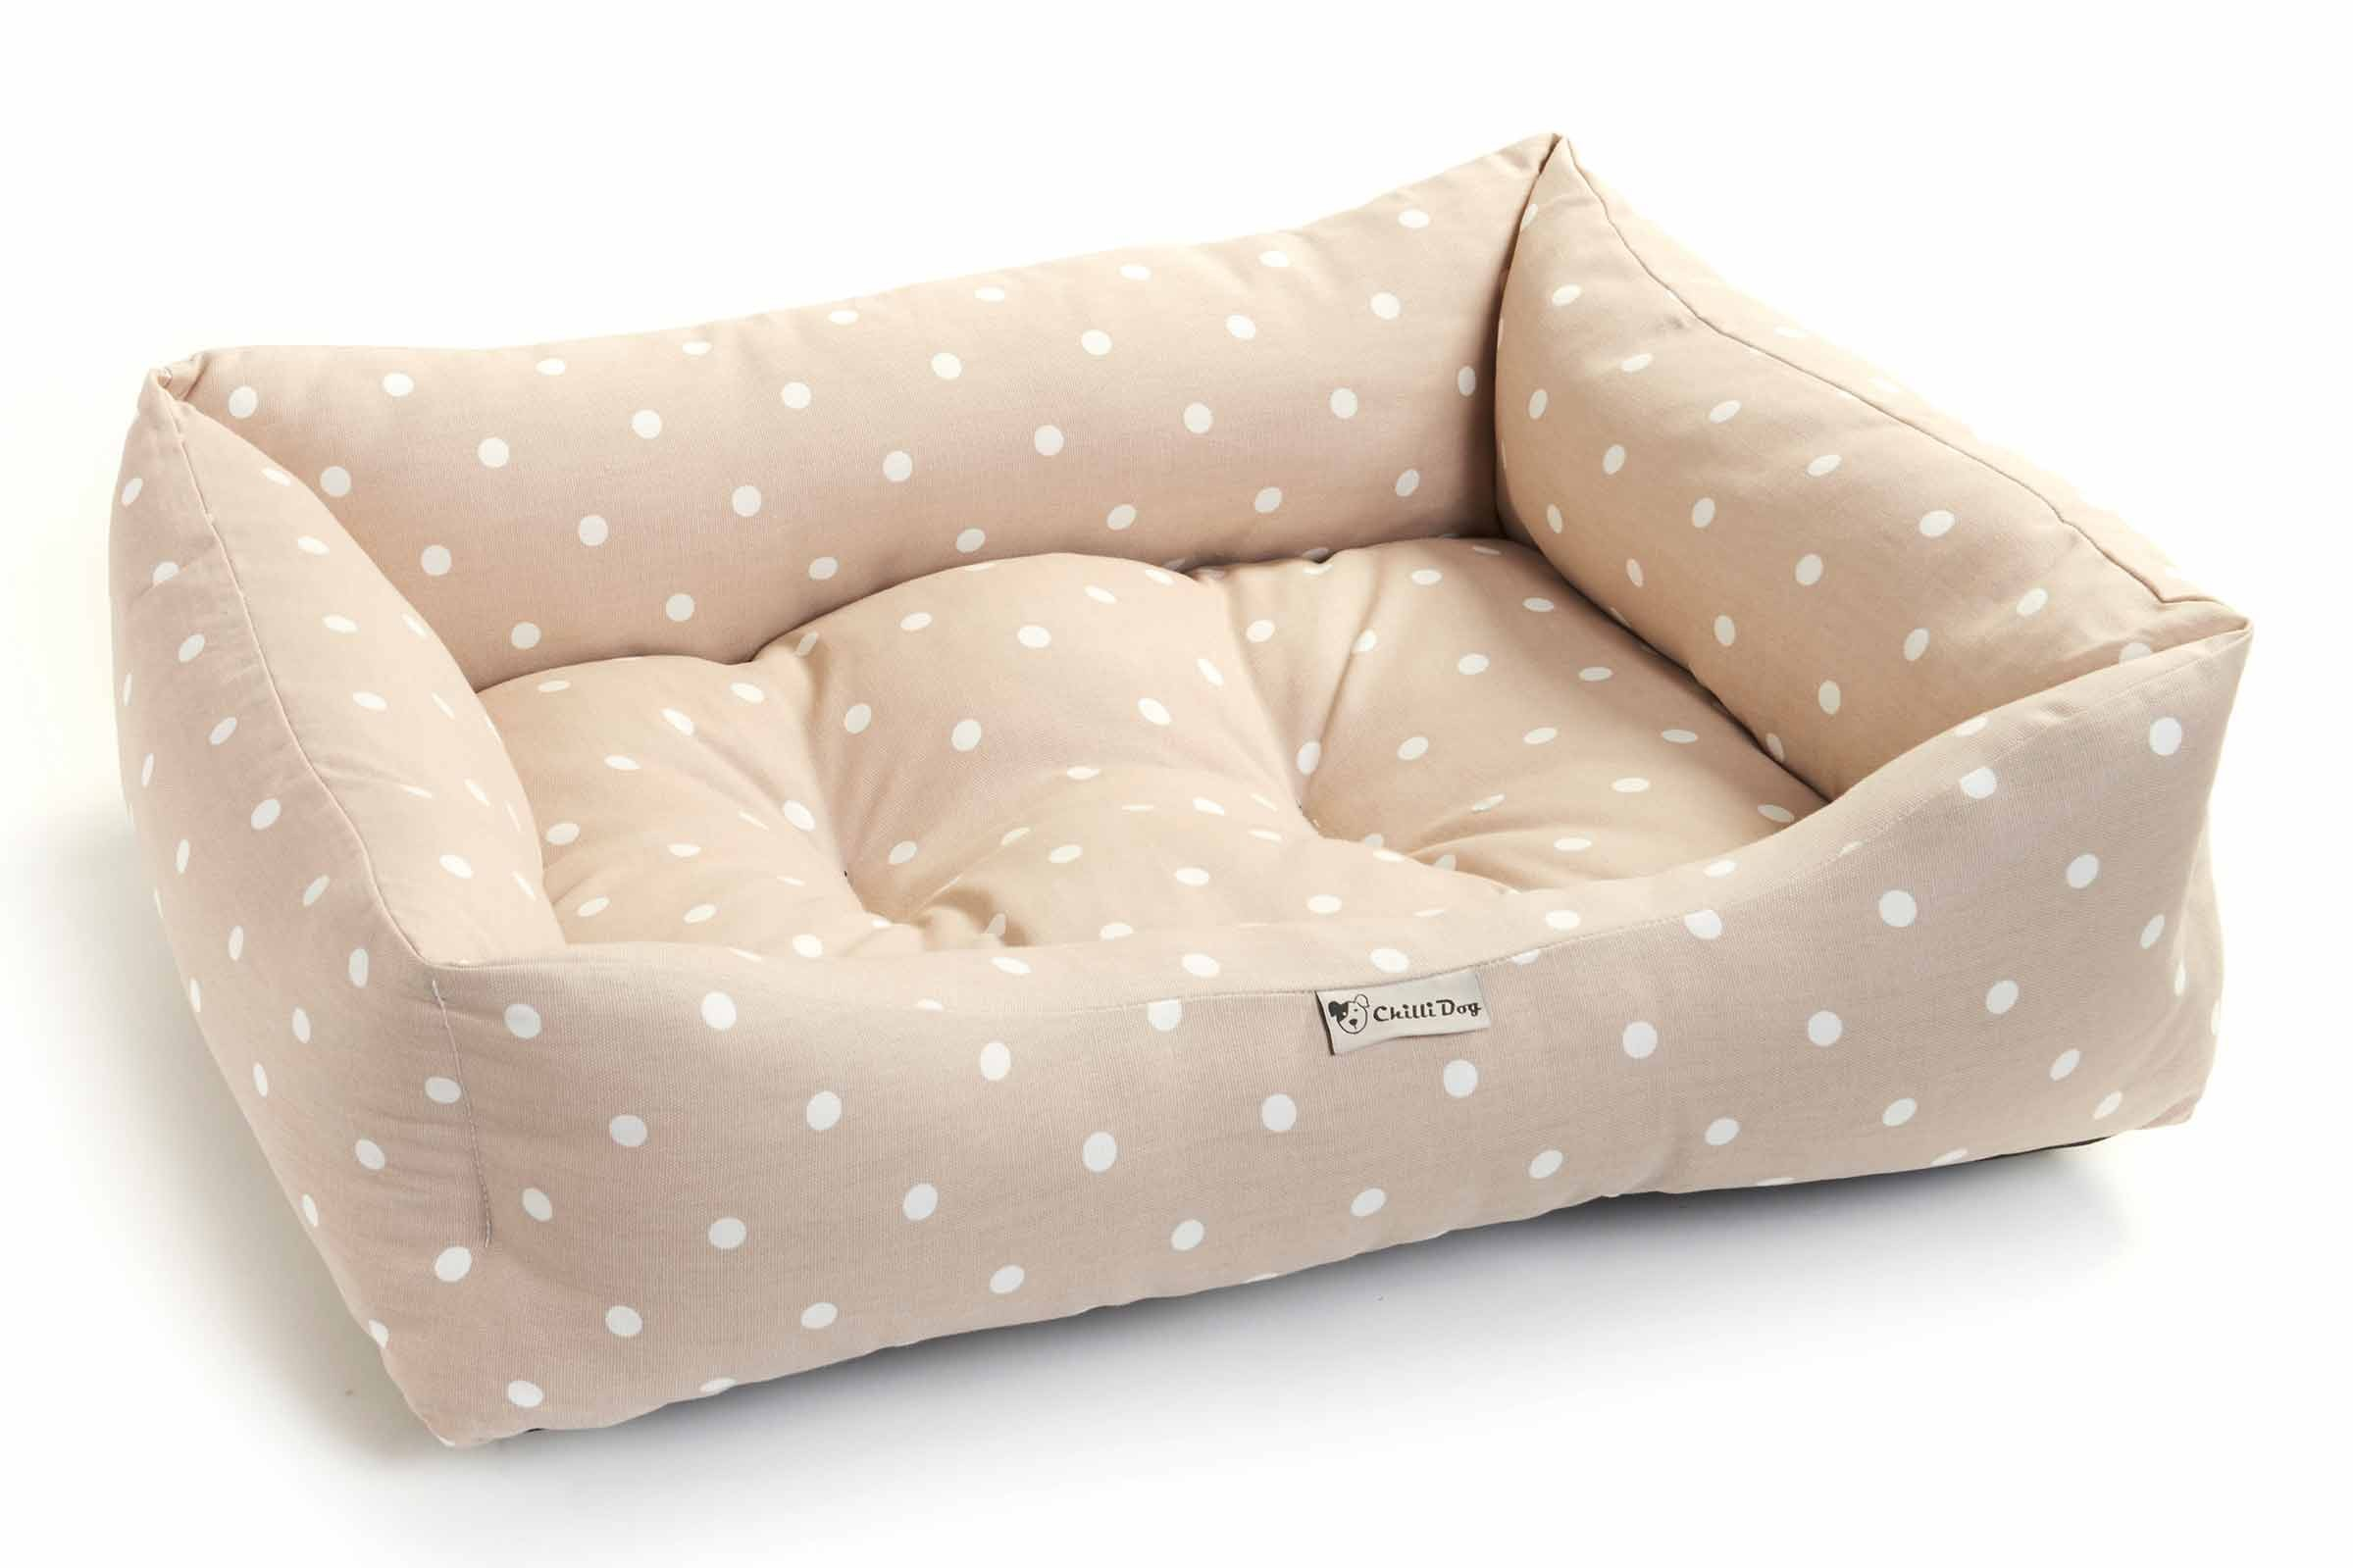 clark rubber foam sofa bed small sofas with metal legs british made chilli dog clarke and polka dot design